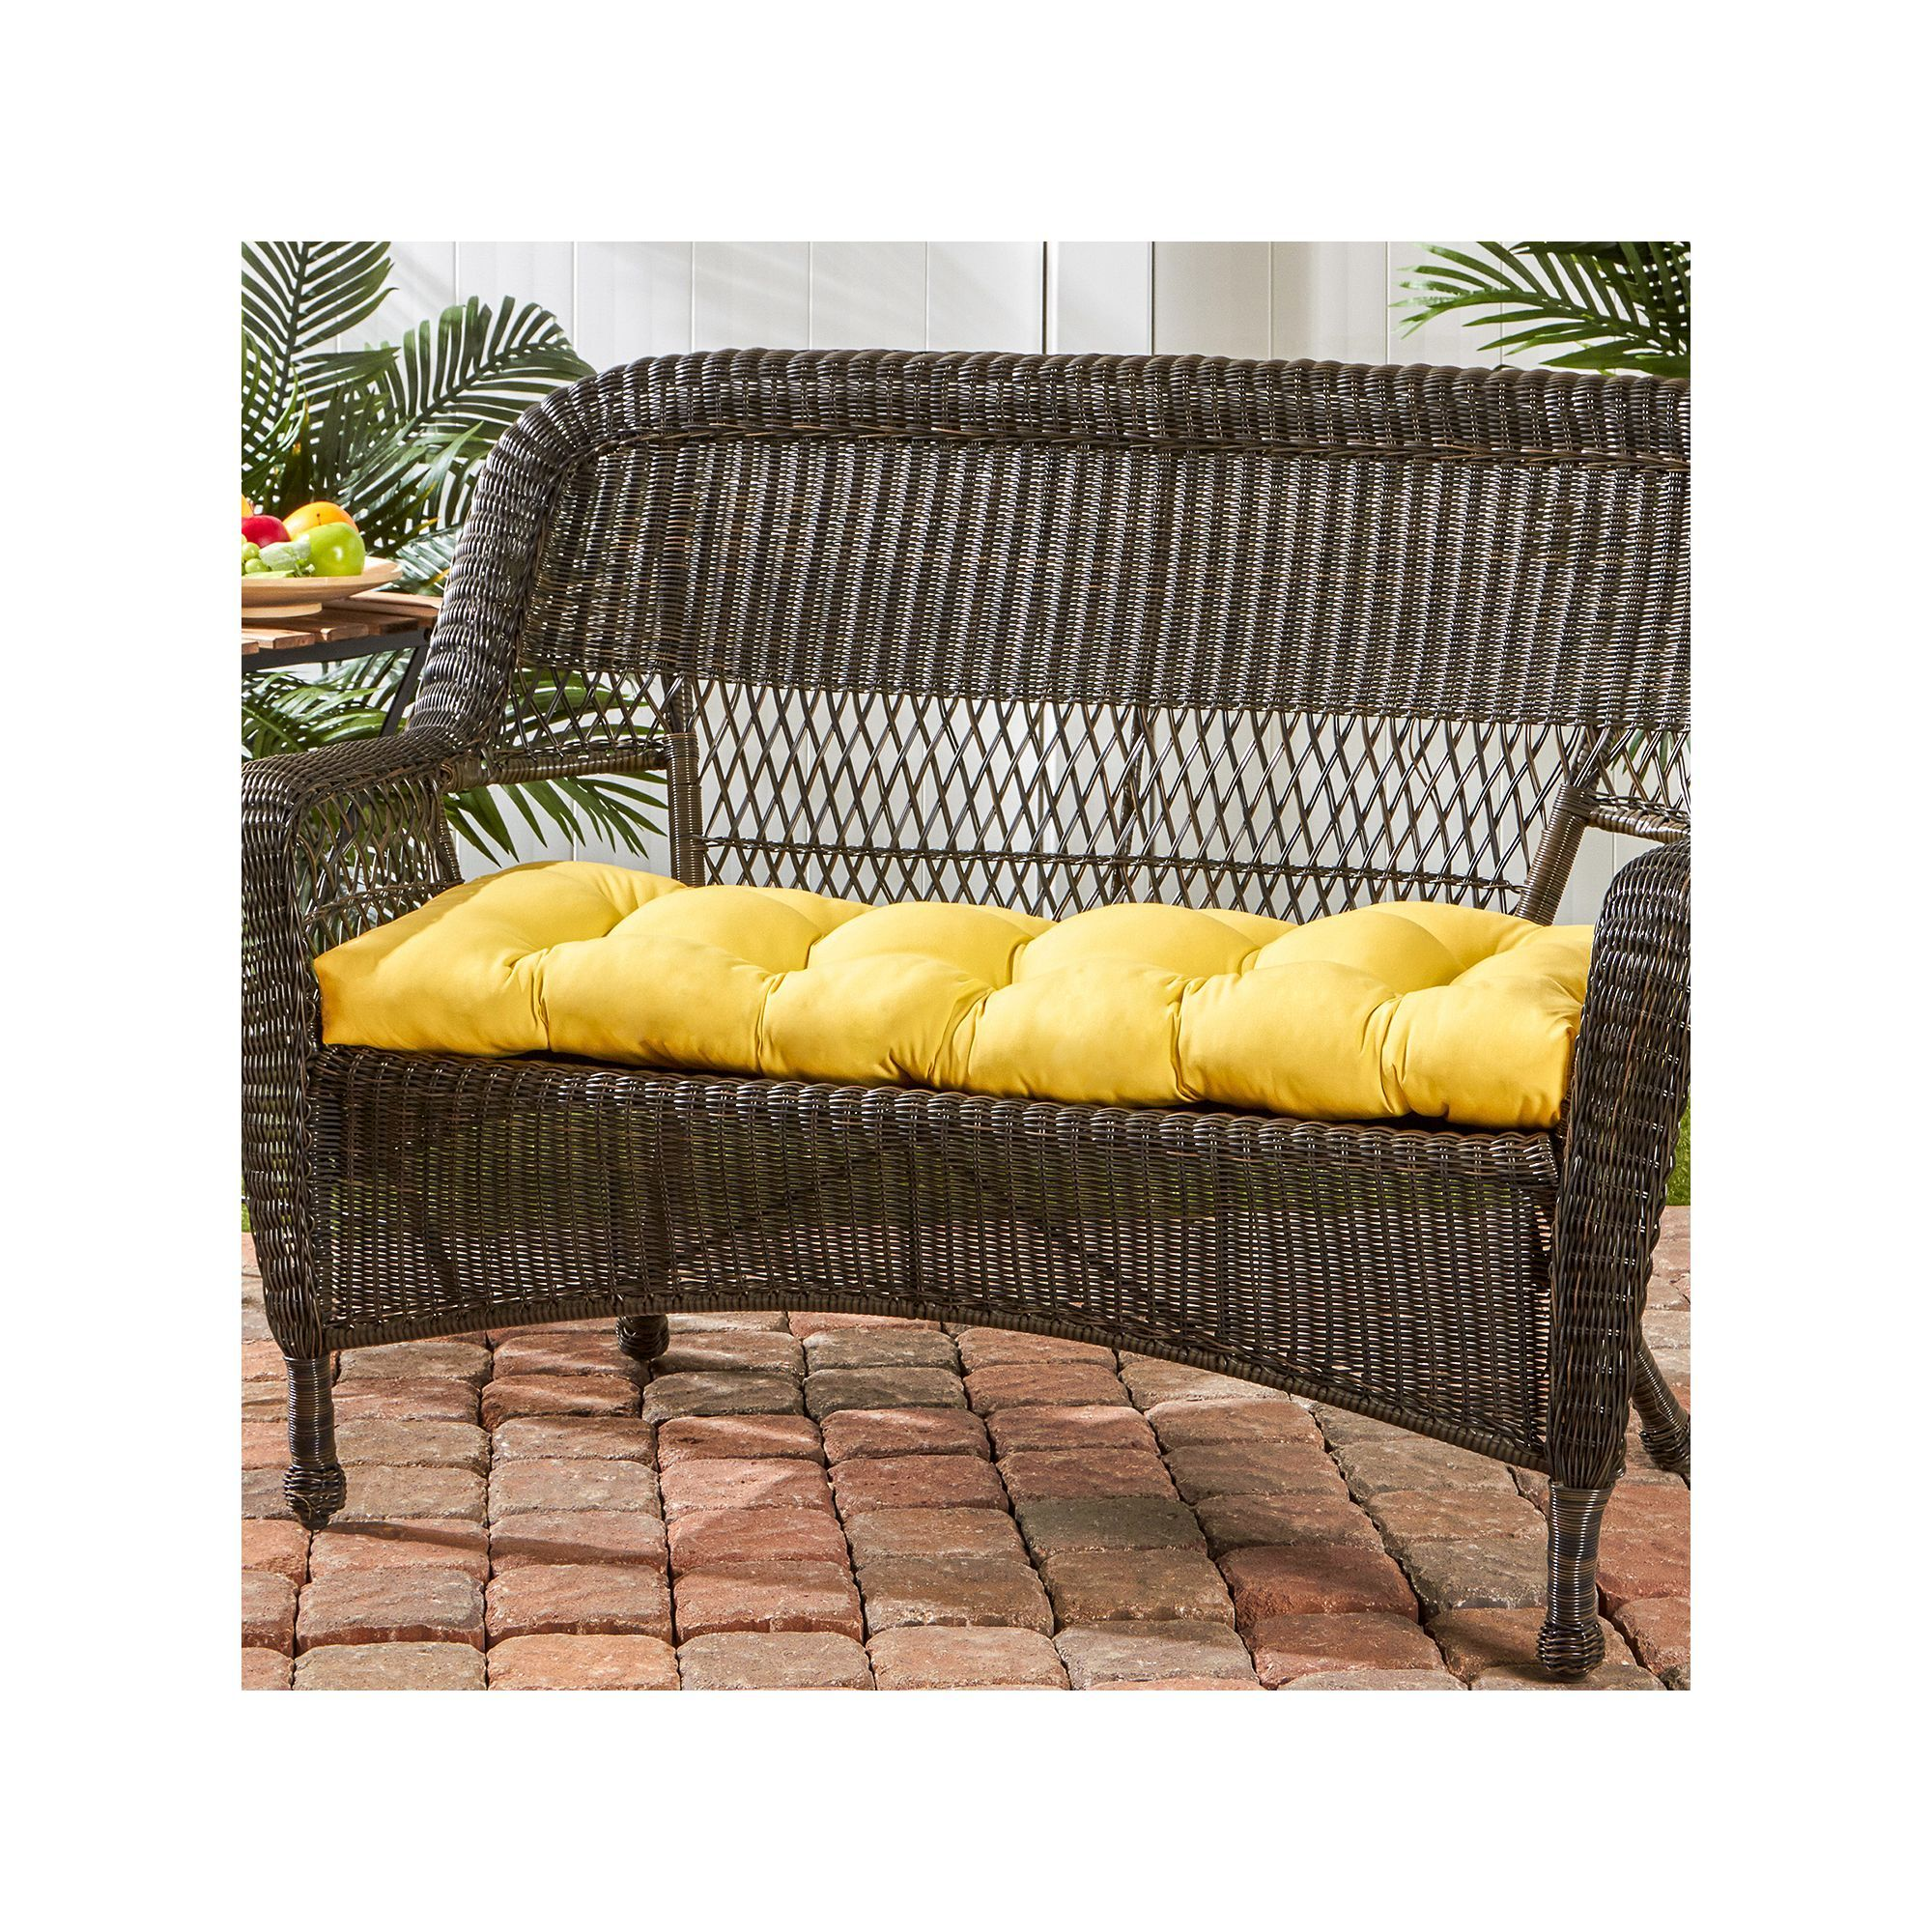 Greendale Home Fashions Outdoor Porch Swing Or Bench Cushion